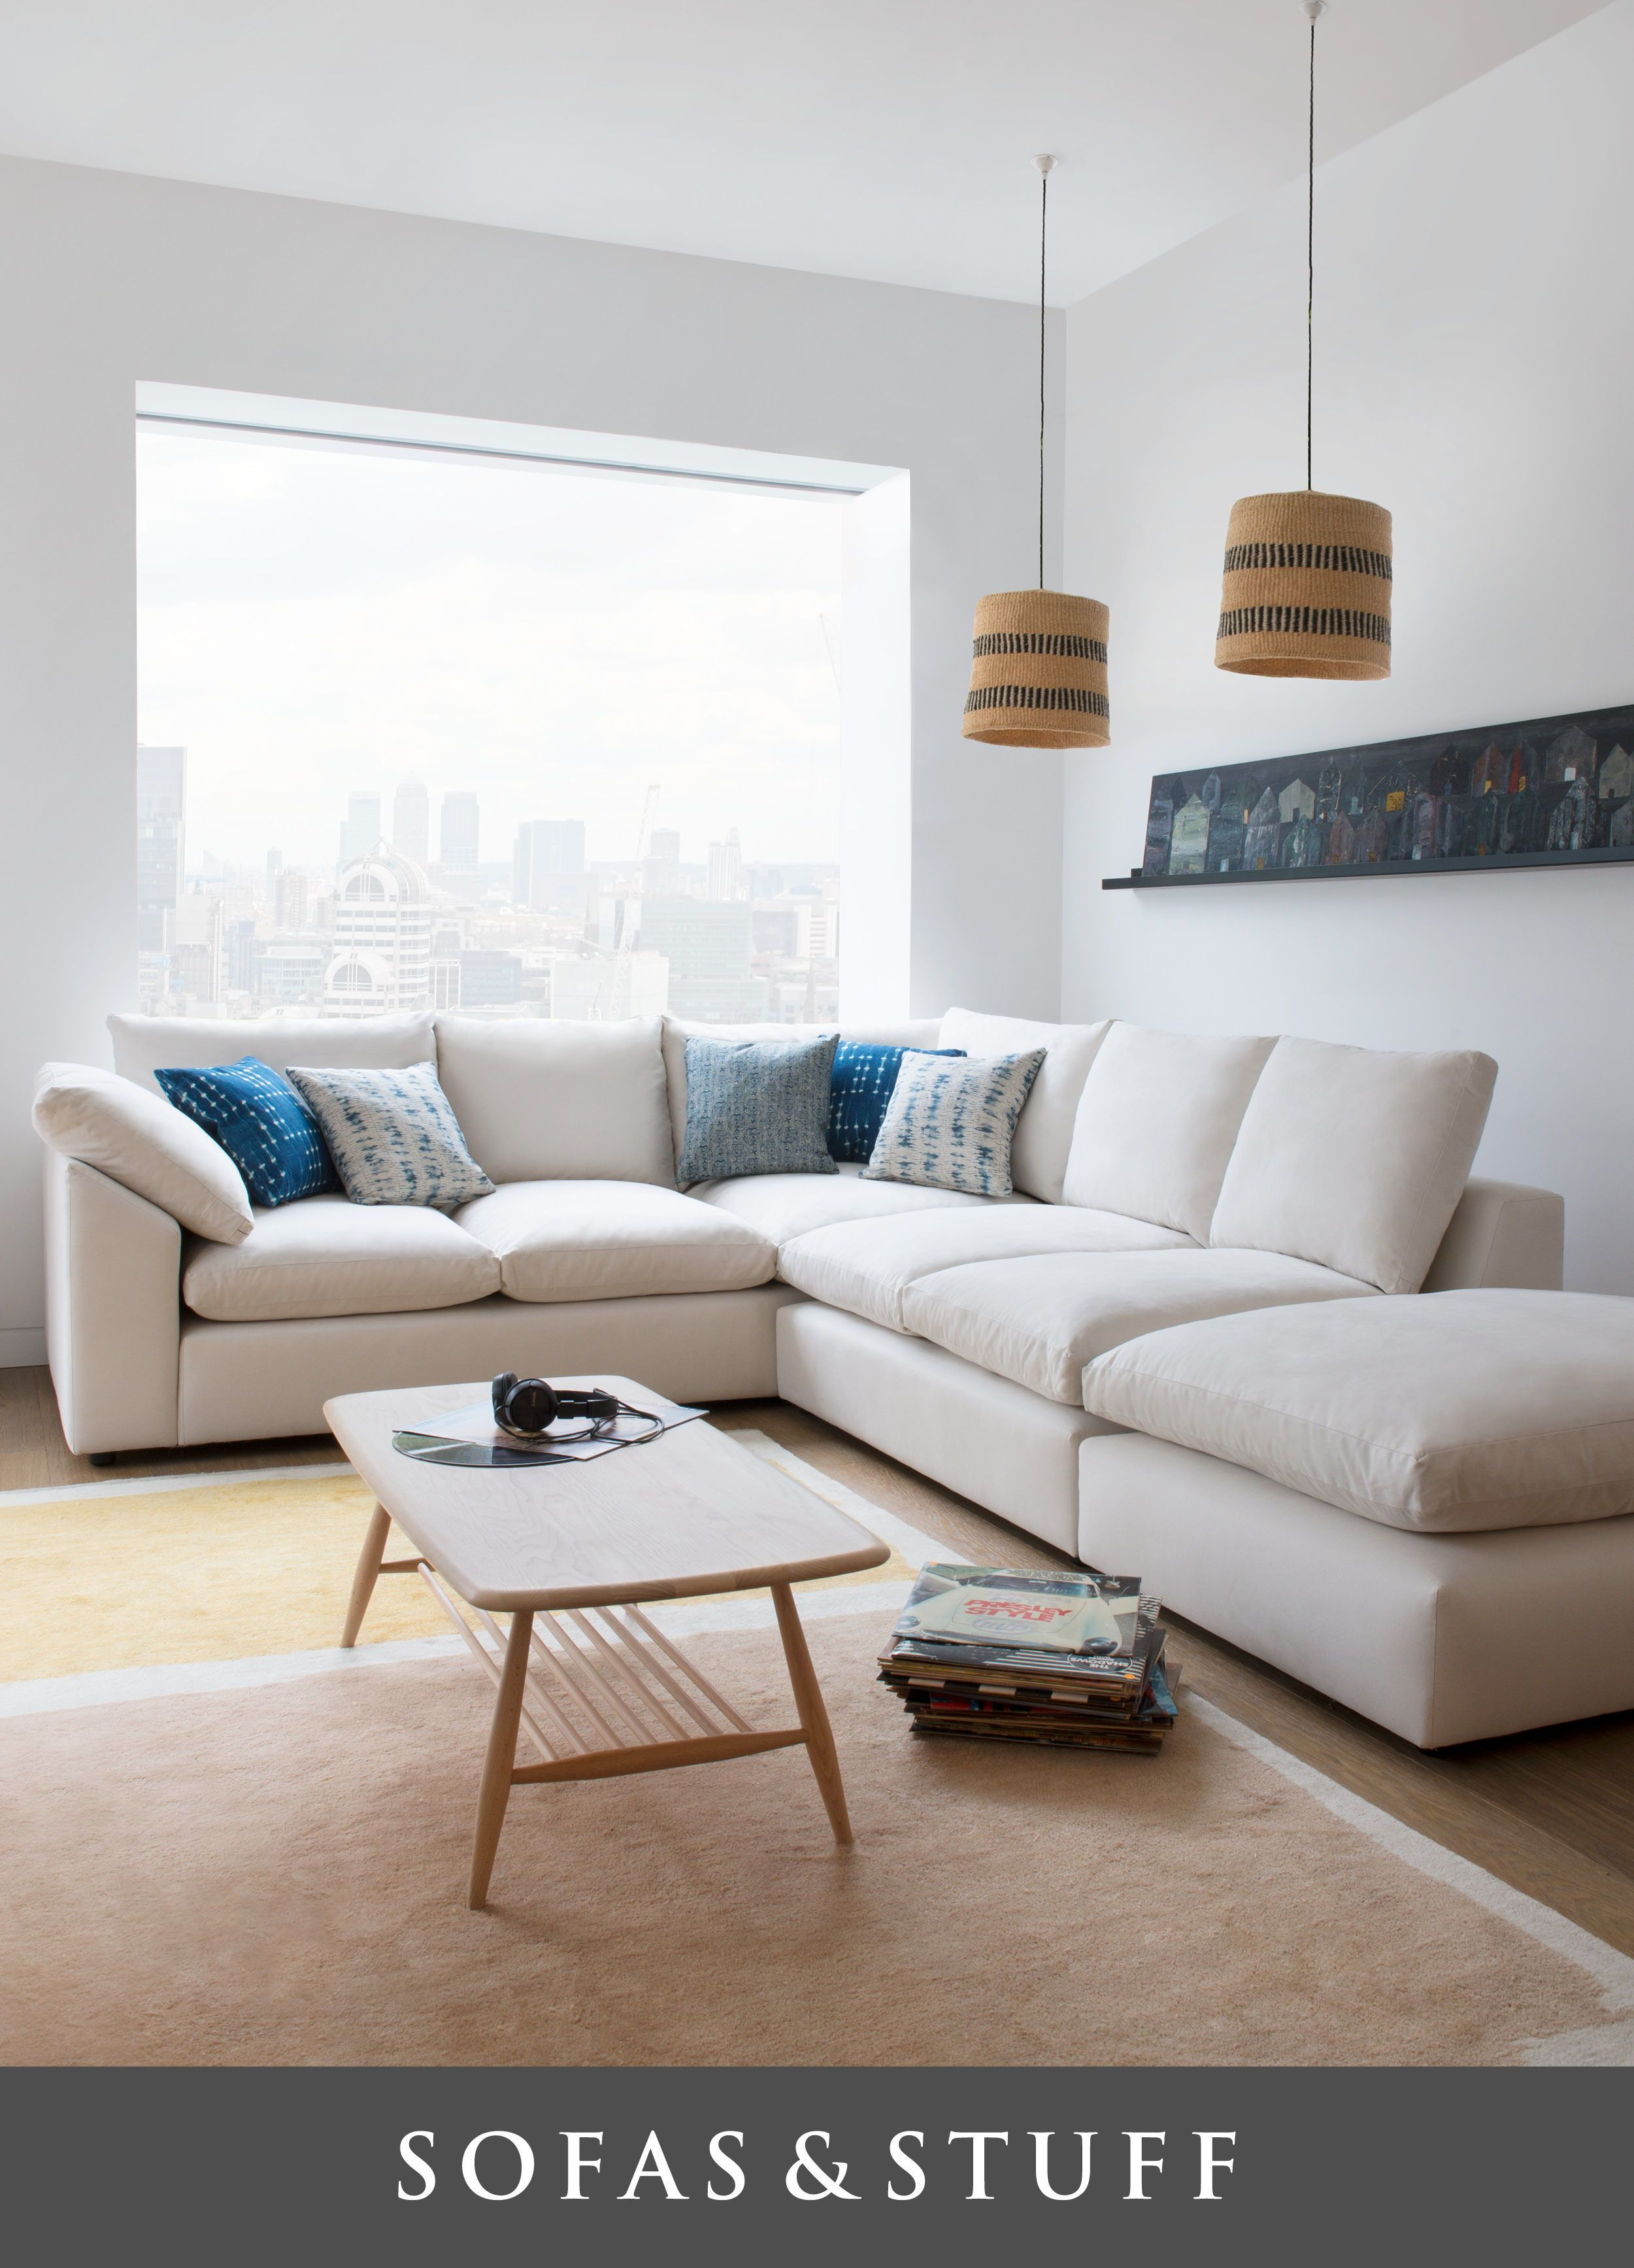 Contemporary Sofas Well Here S The Inside Scoop On What We Deem To Be A Contemporary Sofa With Hints And Tips On H Corner Sofa Sofa Handmade Sofa Inspiration